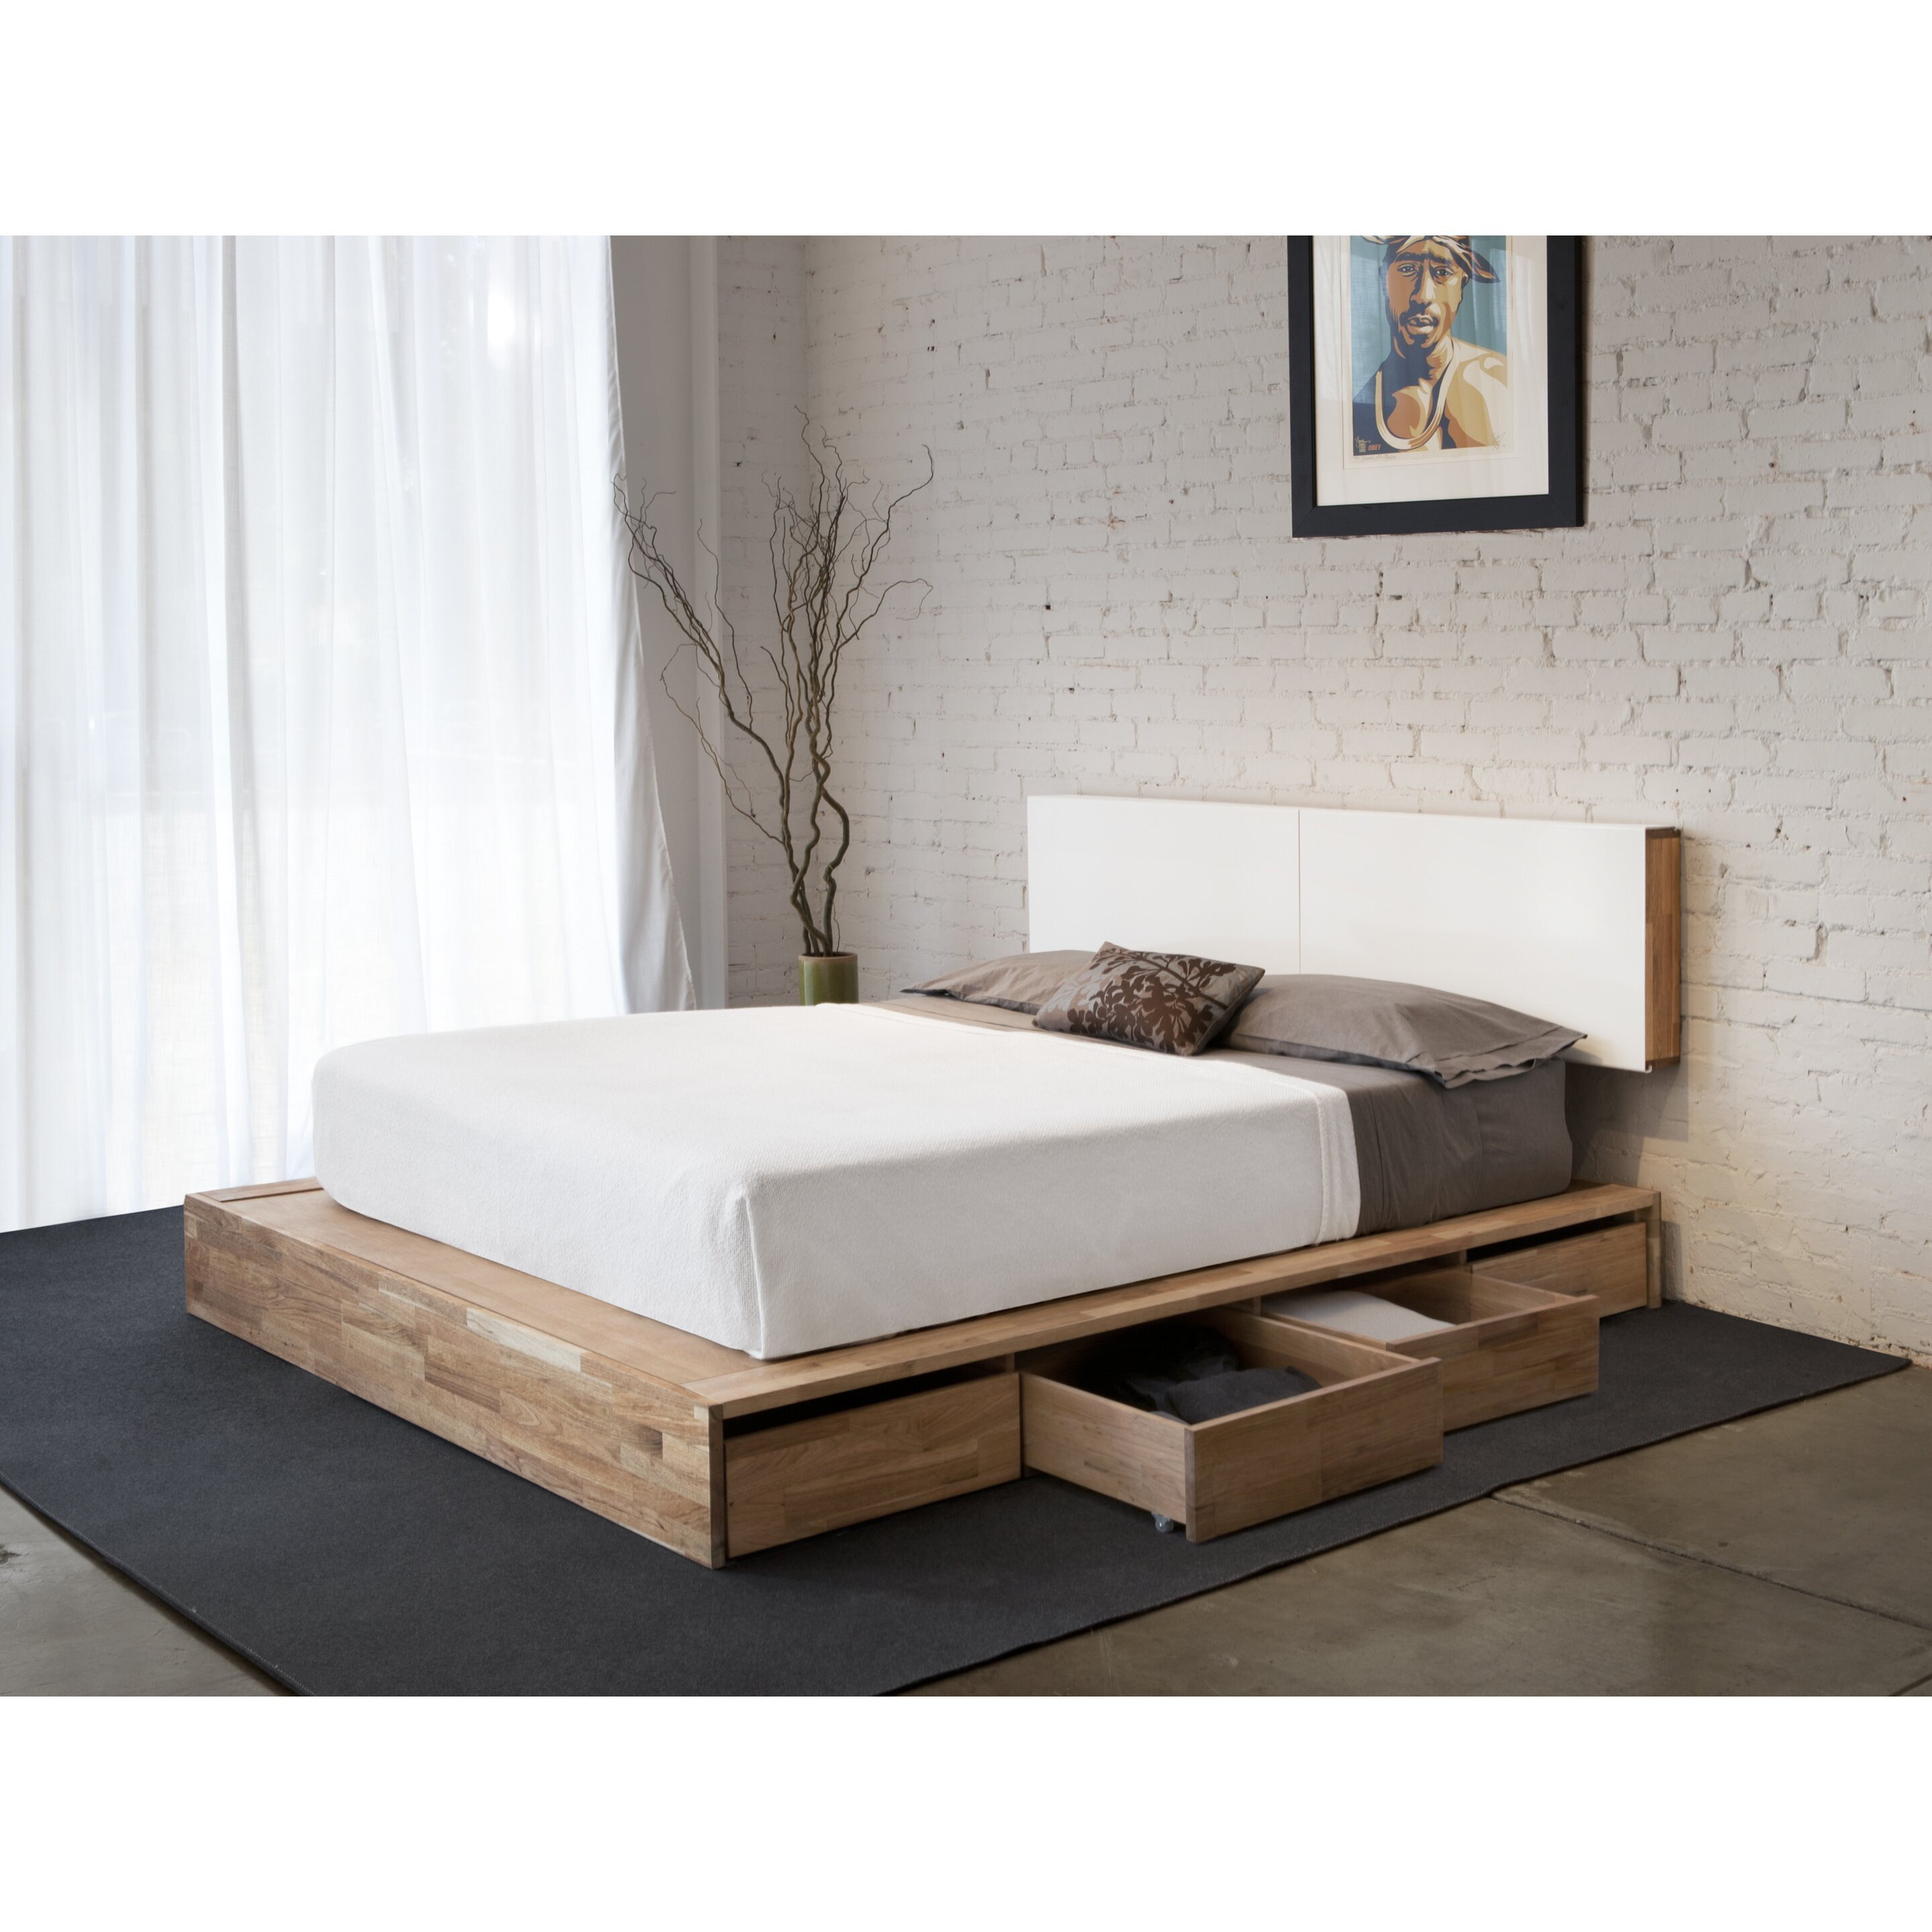 Mash studios lax series storage platform bed reviews for Mash studios lax